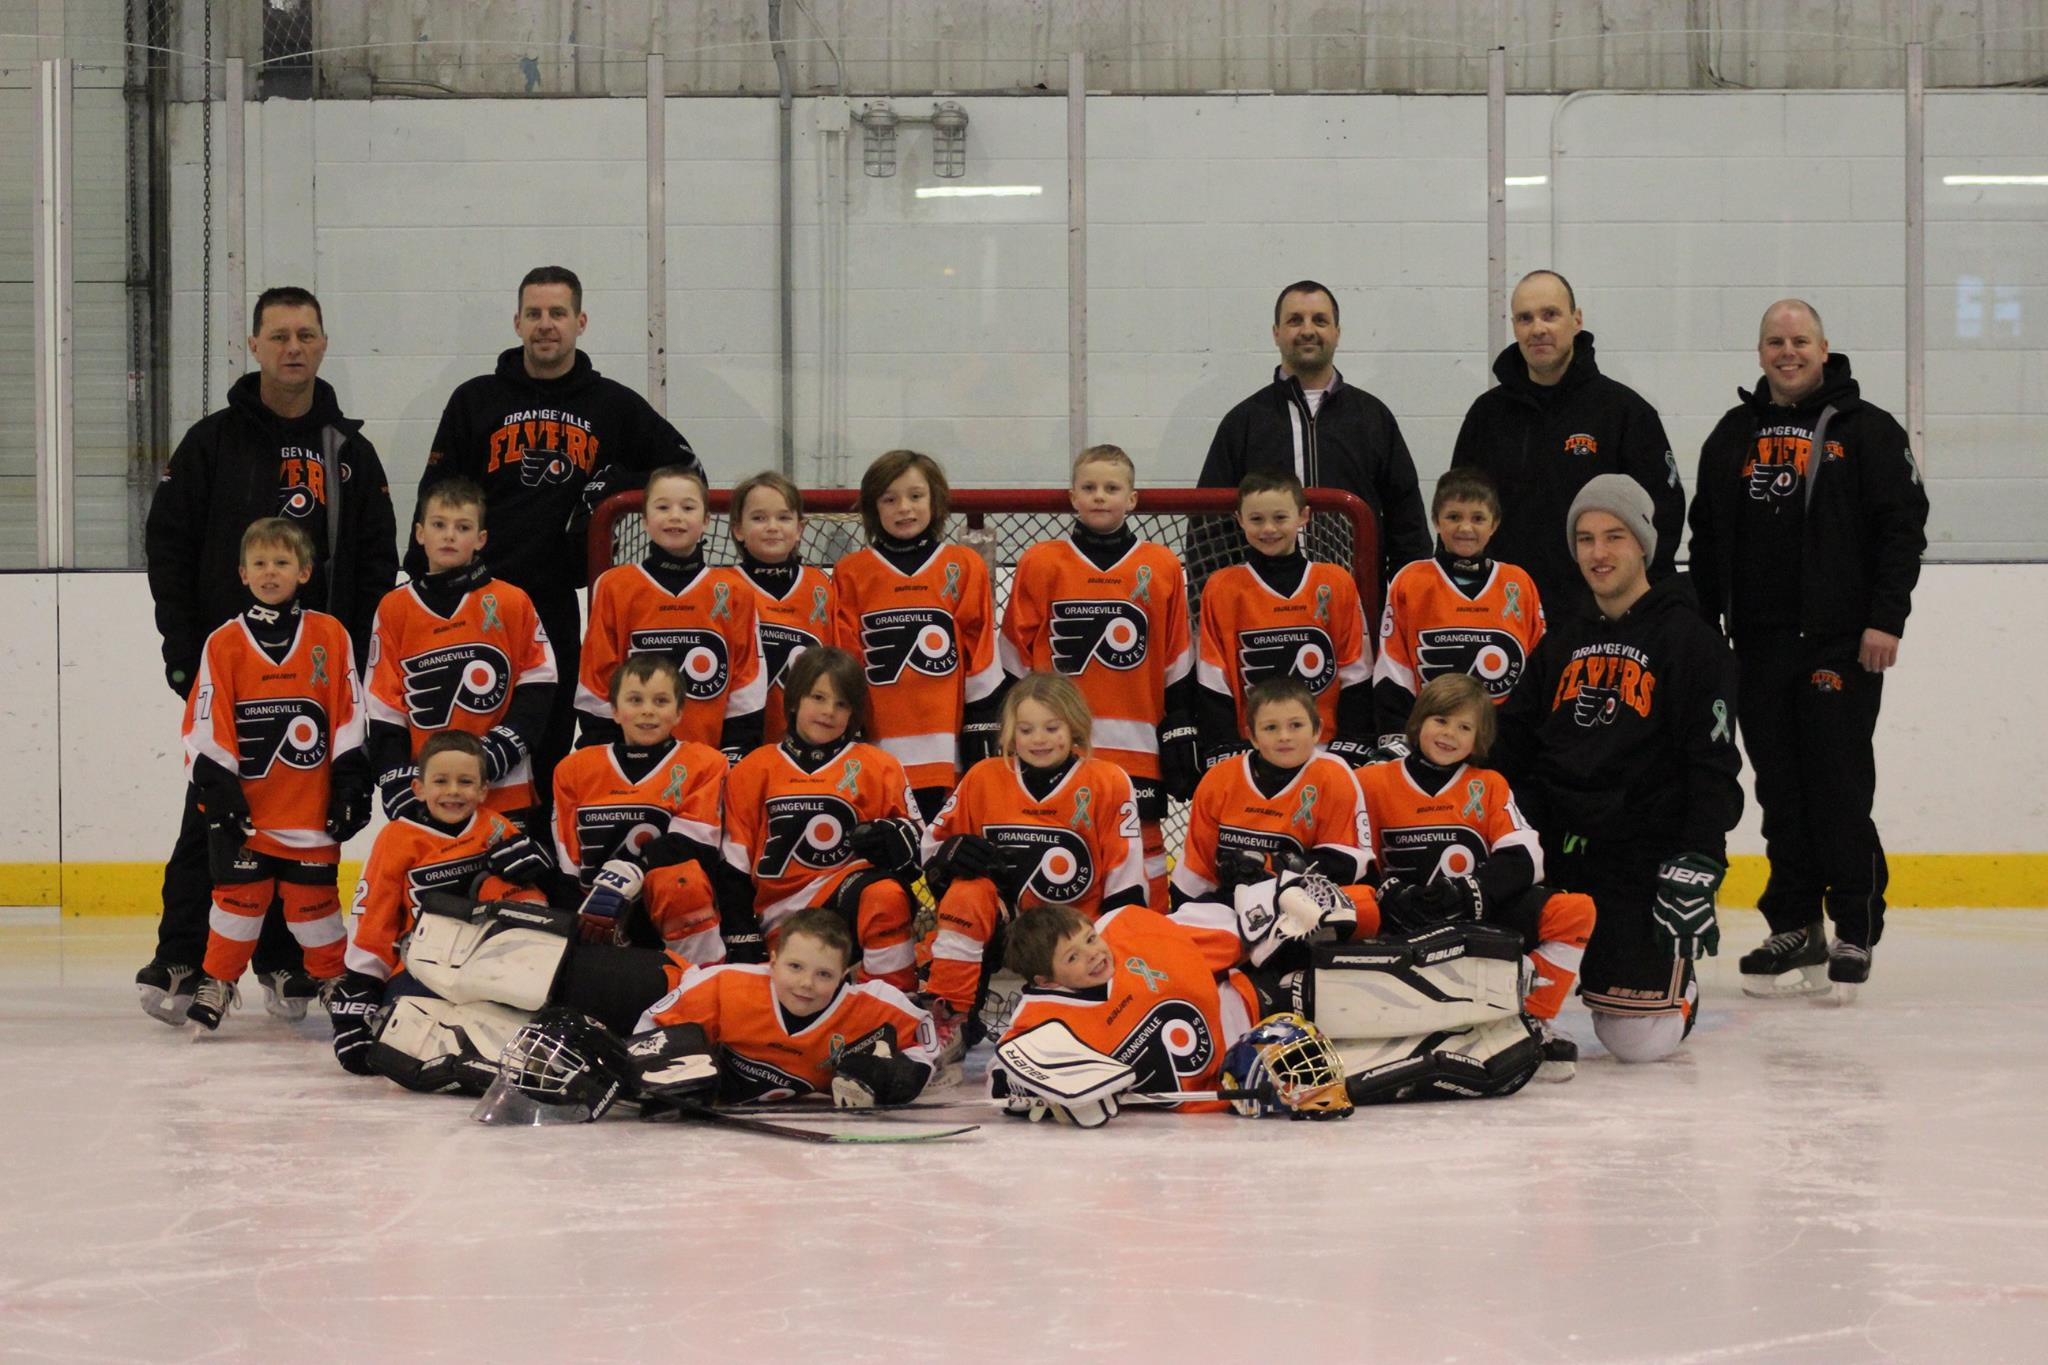 Orangeville Tyke Select Team RS 2007 Sponsor